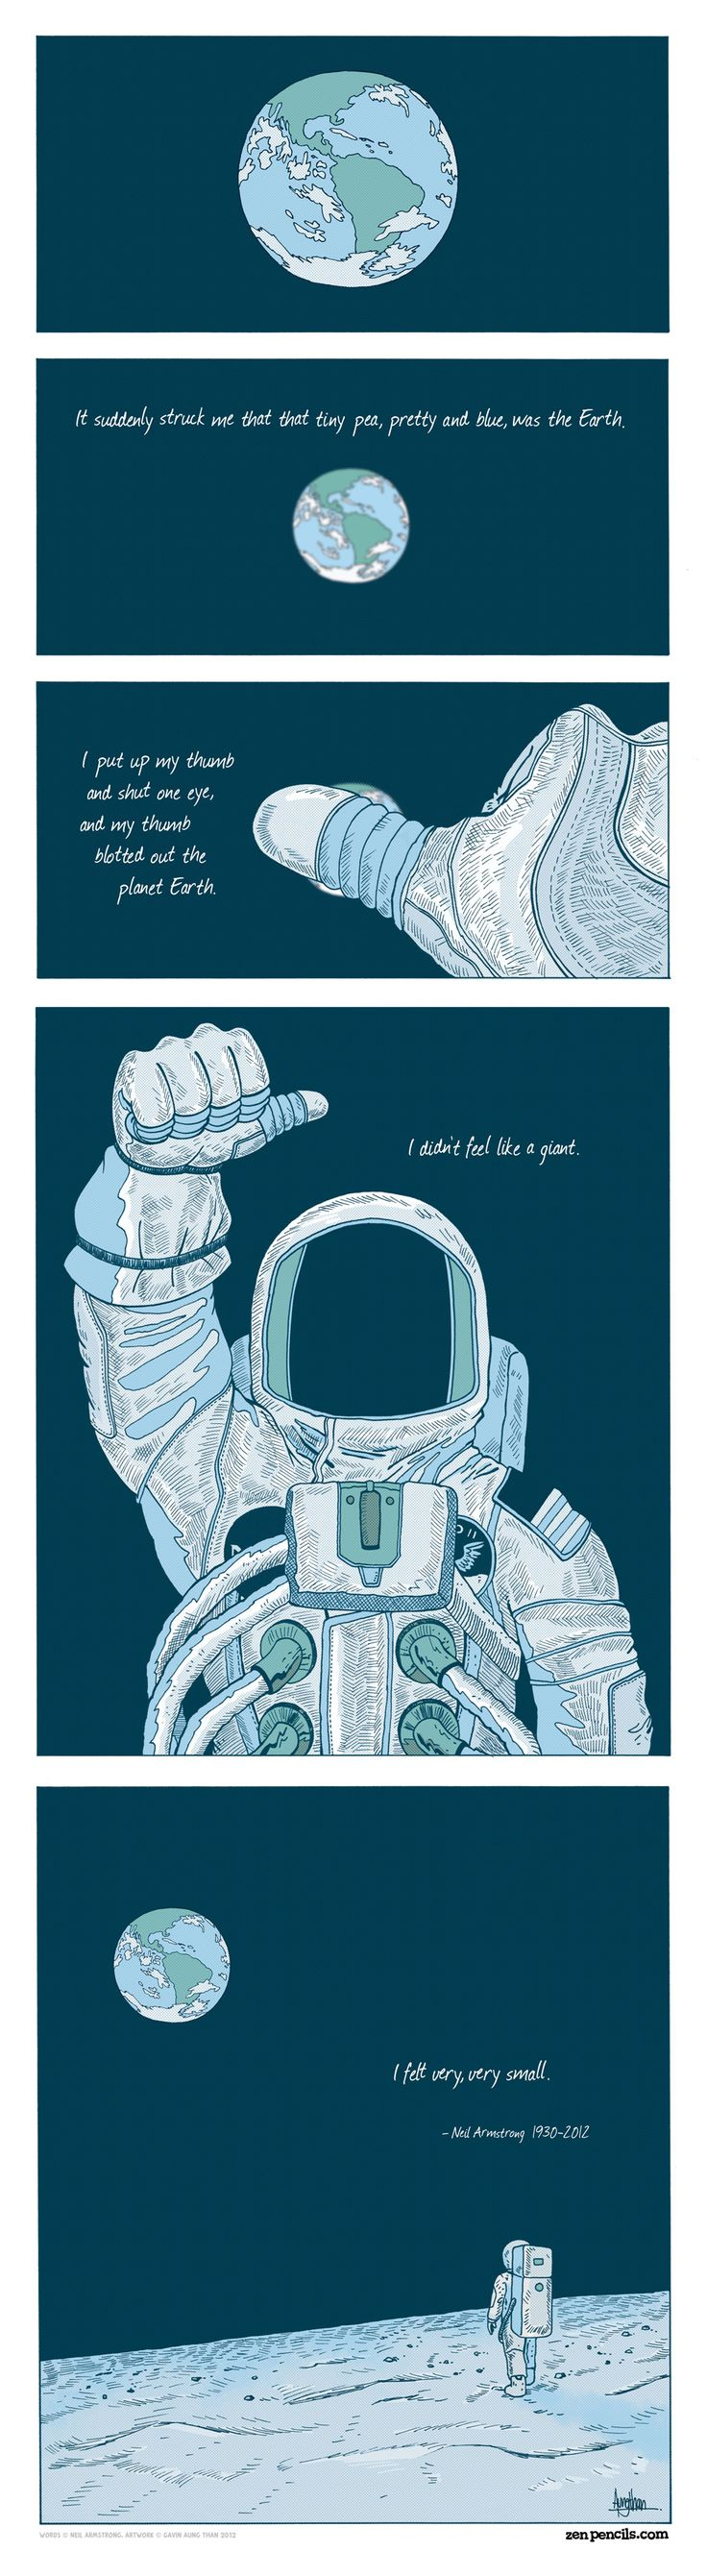 A great Neil Armstrong tribute from @zenpencils